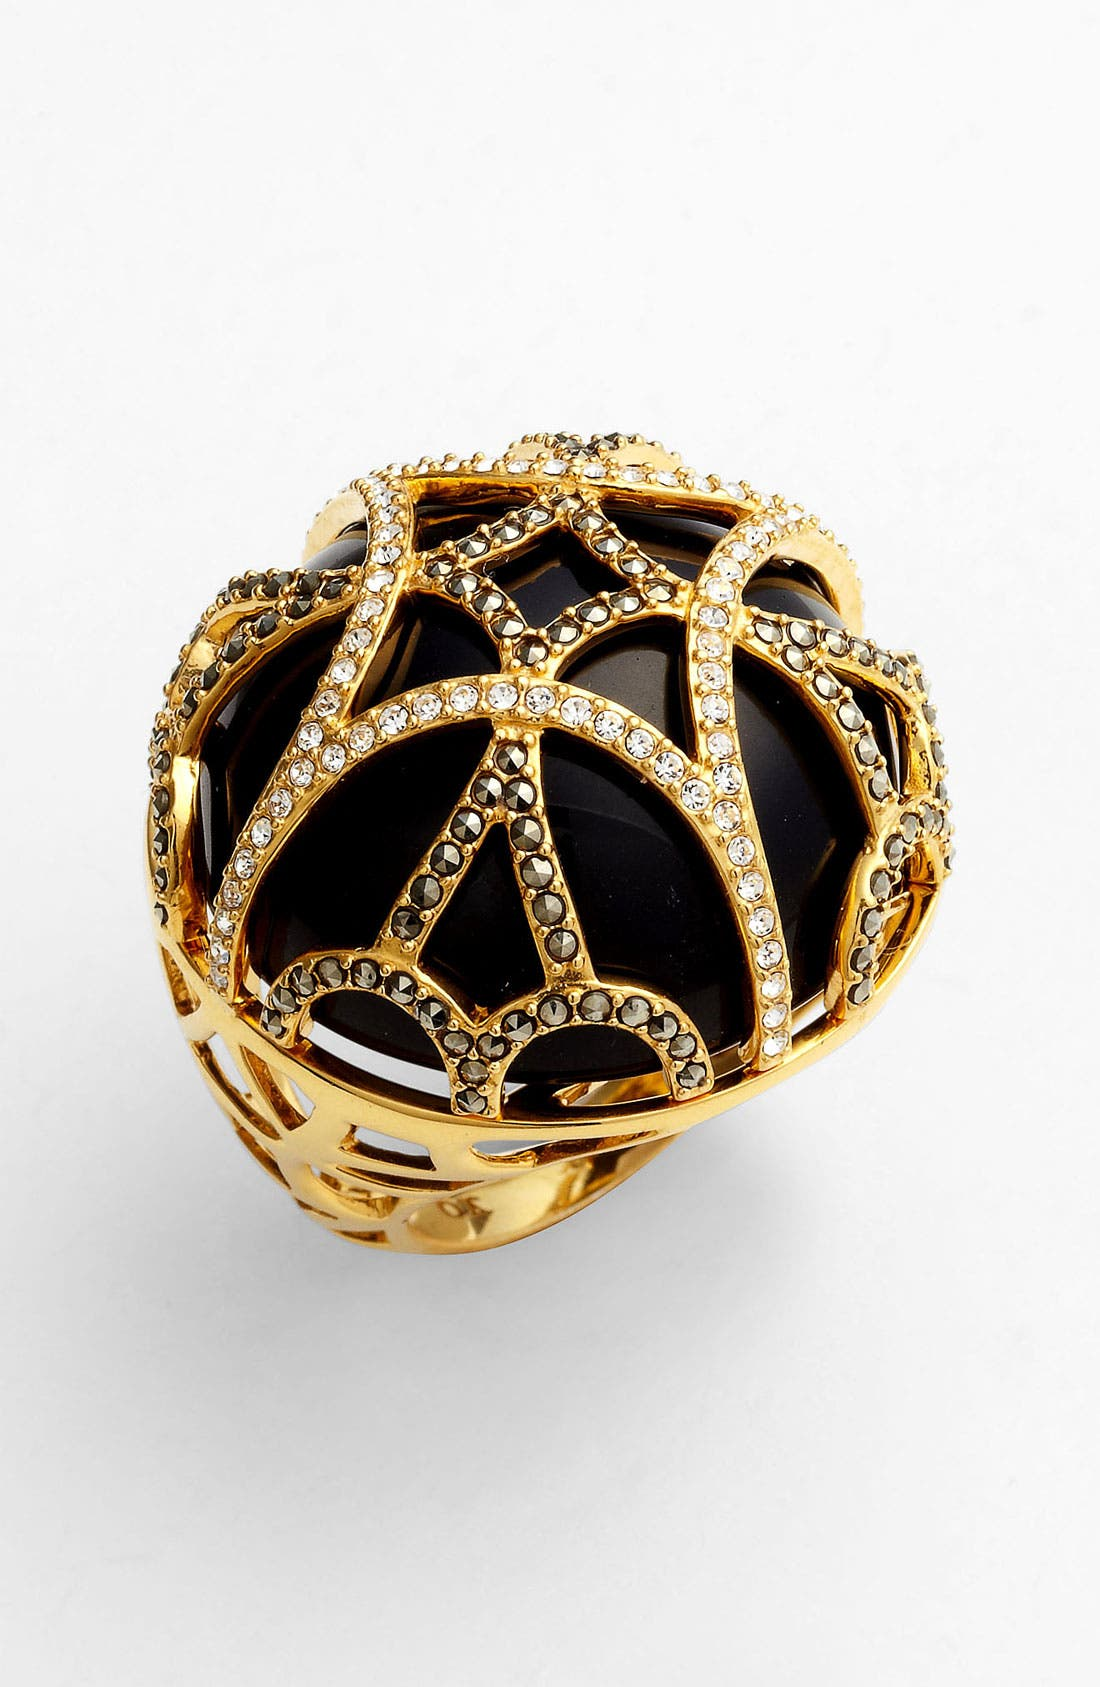 Main Image - Judith Jack 'Matrix' Cocktail Ring